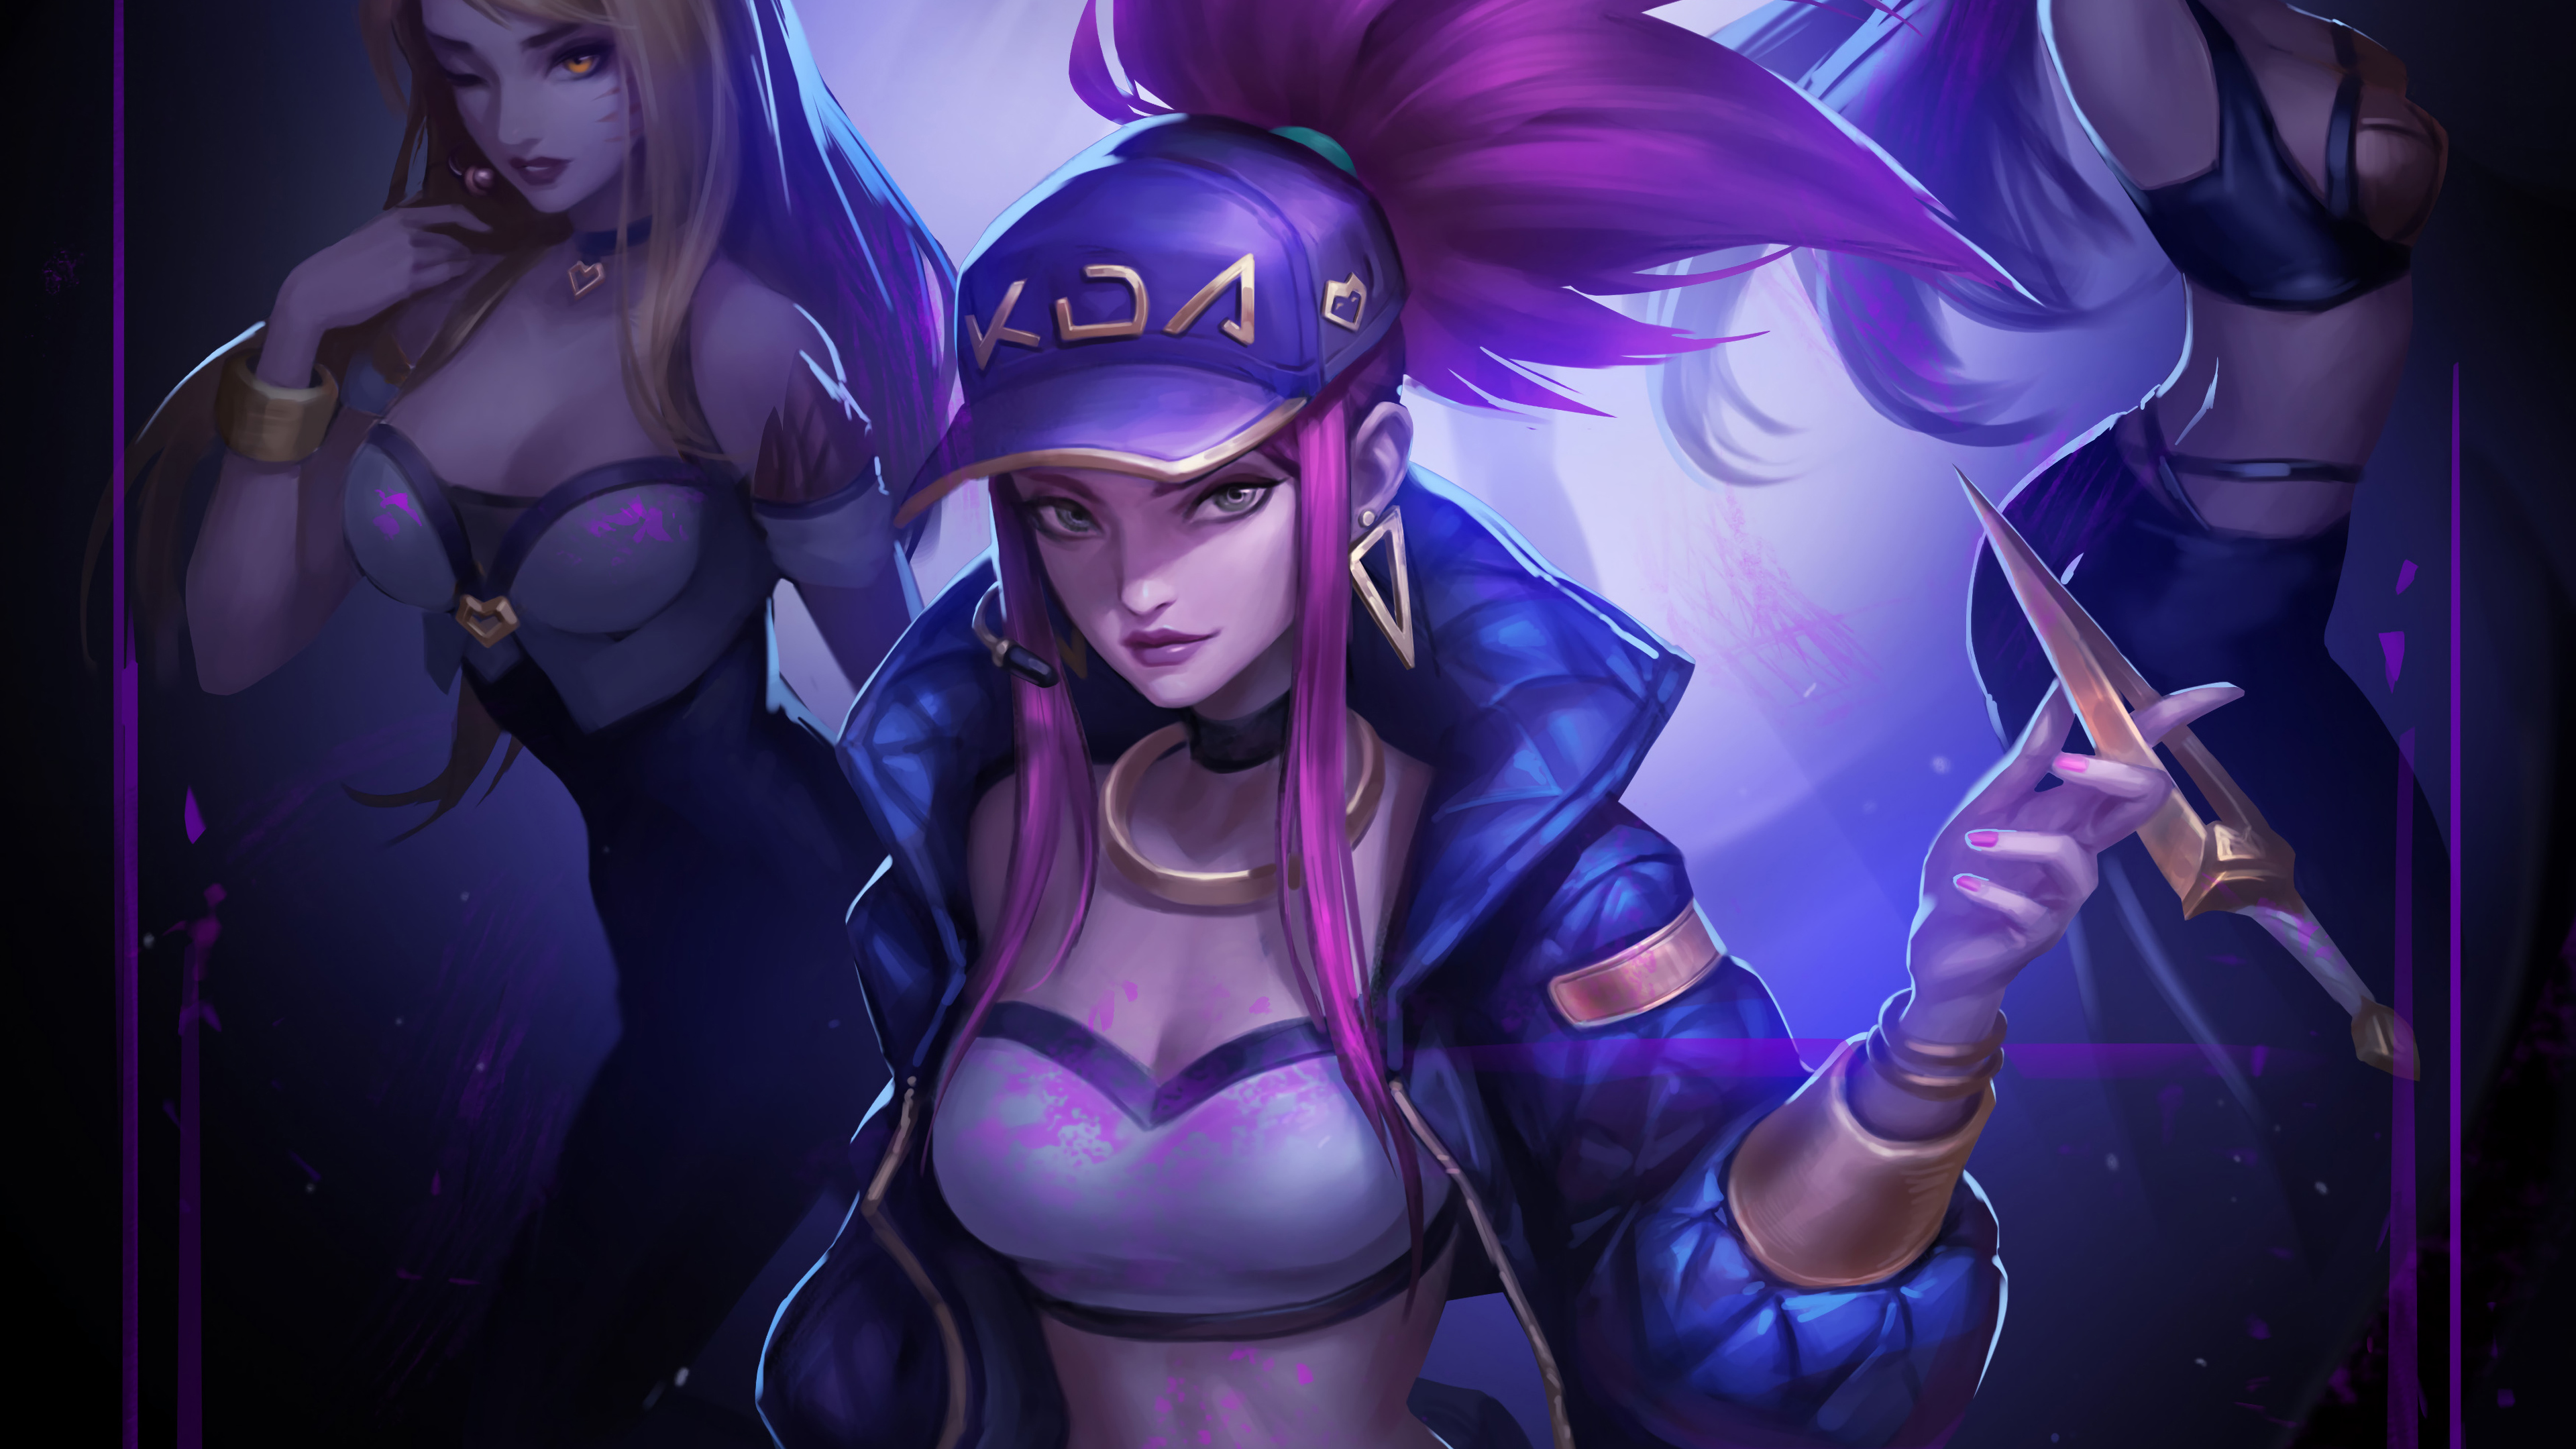 Kda Akali League Of Legends 4k Hd Games 4k Wallpapers Images